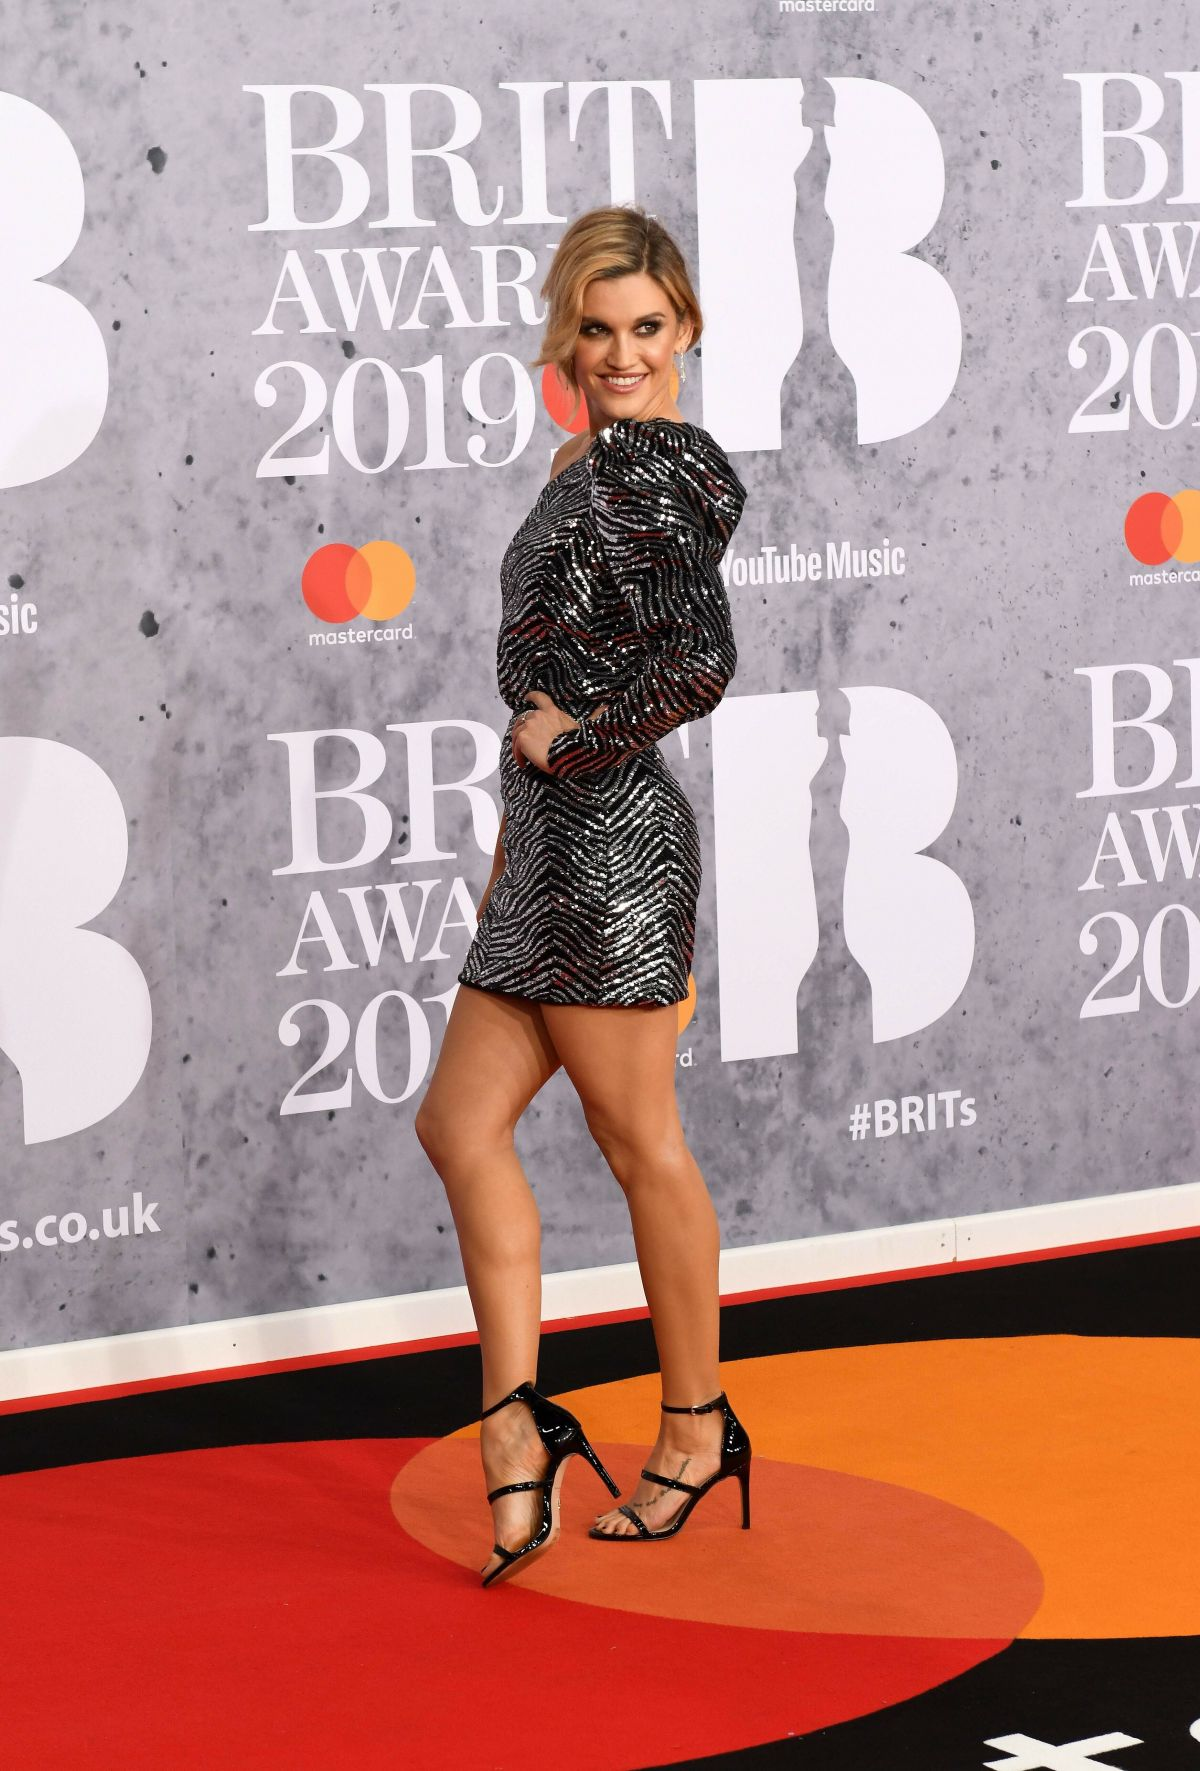 Ashley O Boyle Pro Makeup Design: Ashley Roberts At The BRIT Awards 2019 Held At The O2